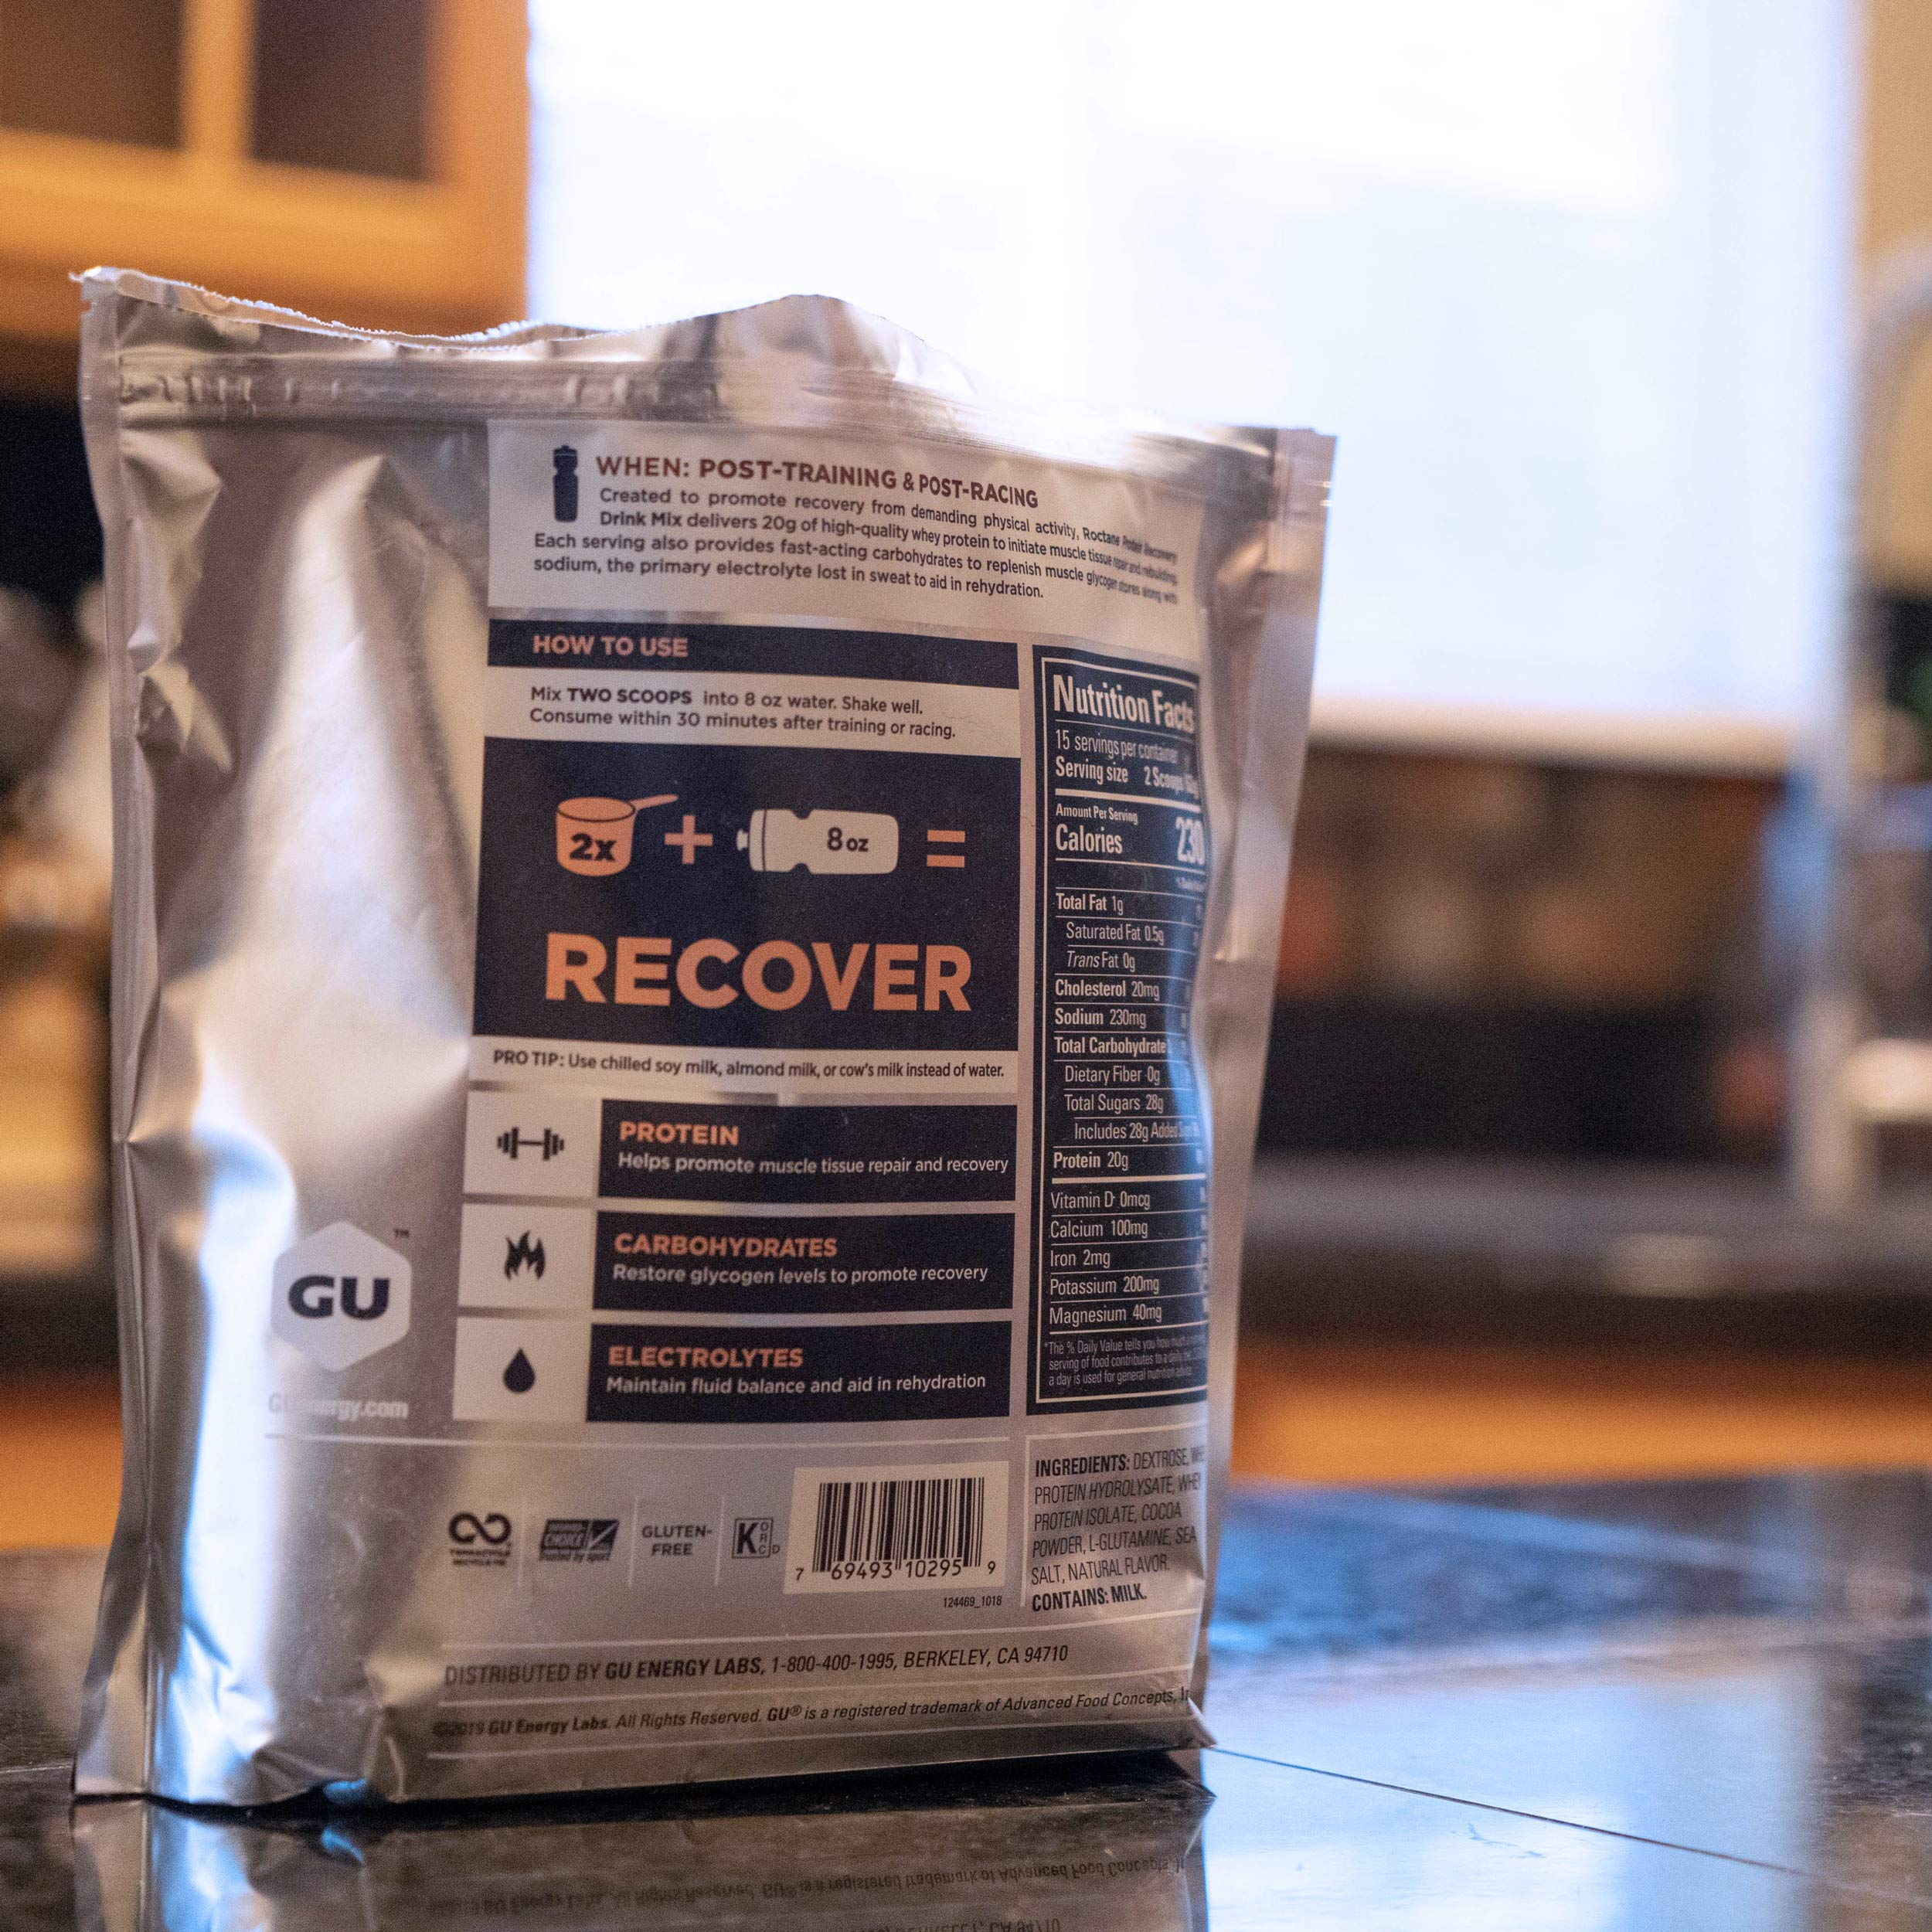 Gu Energy Roctane Ultra Endurance Protein Recovery Drink Mix, 15-Serving Pouch, Chocolate Smoothie by GU Energy Labs (Image #3)